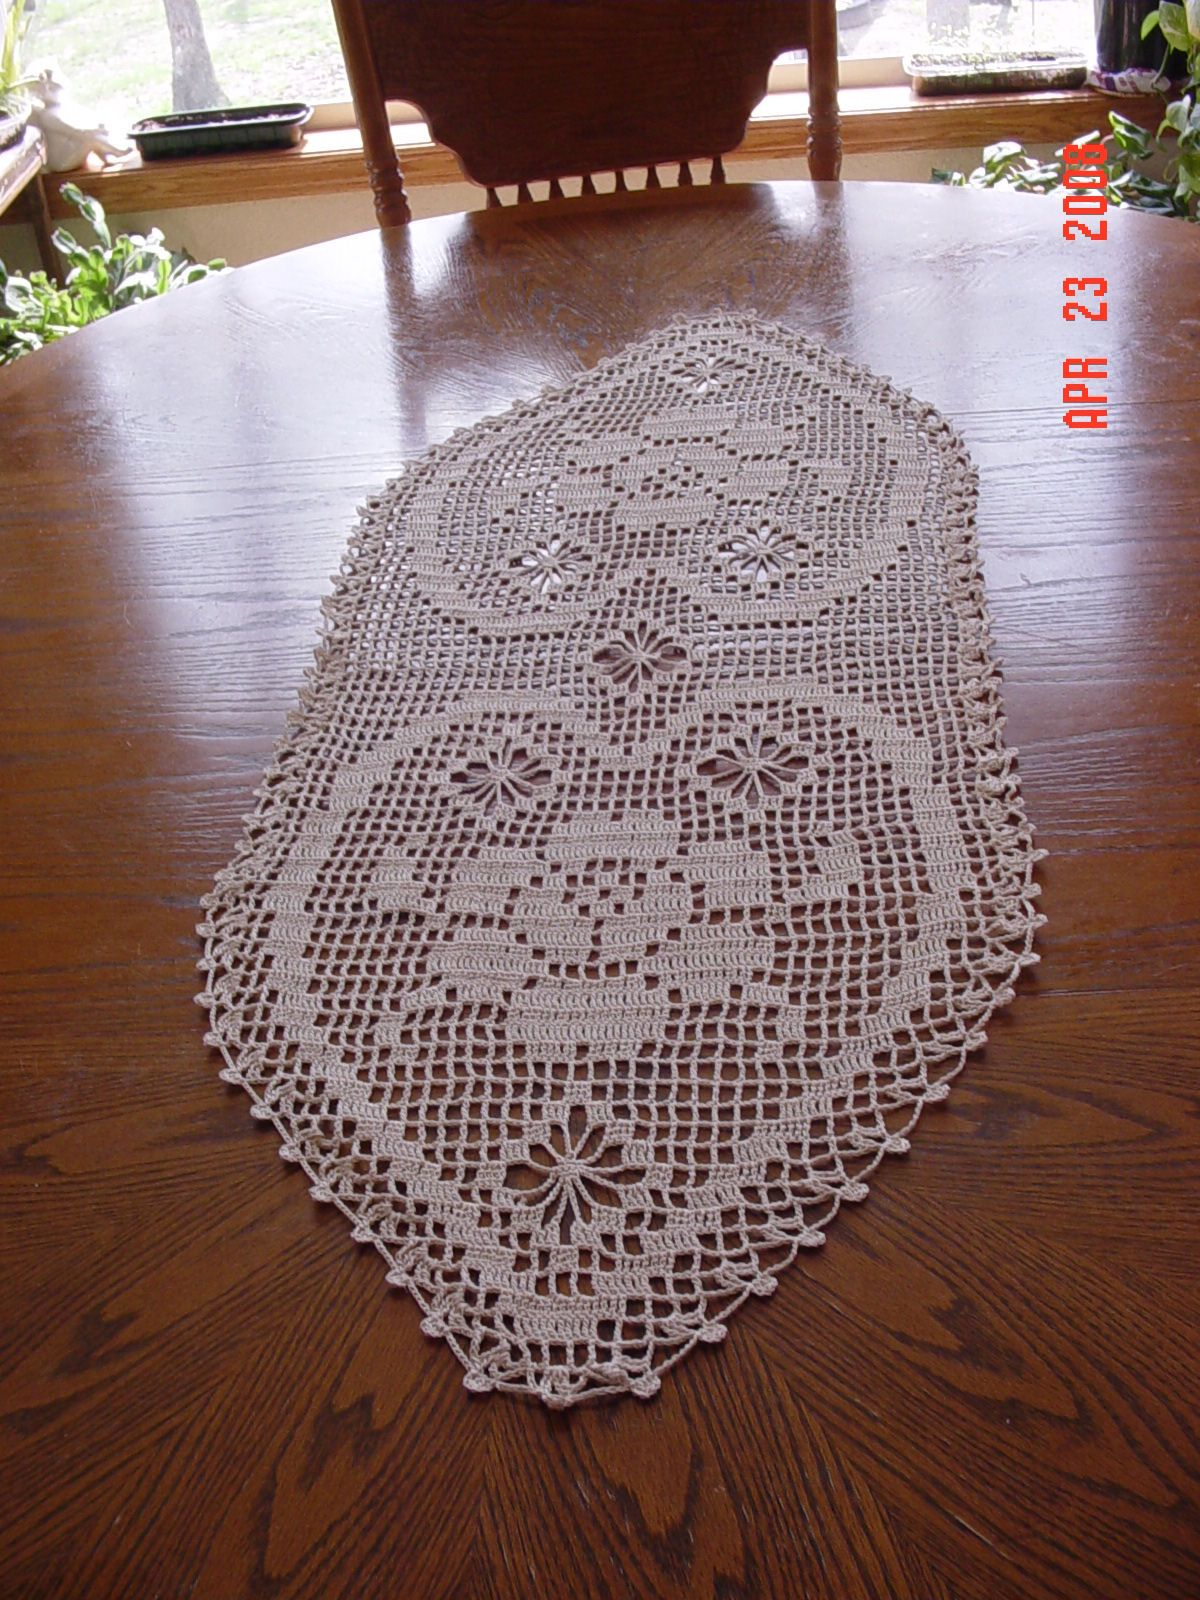 The Pattern For This Table Runner Can Be Found In